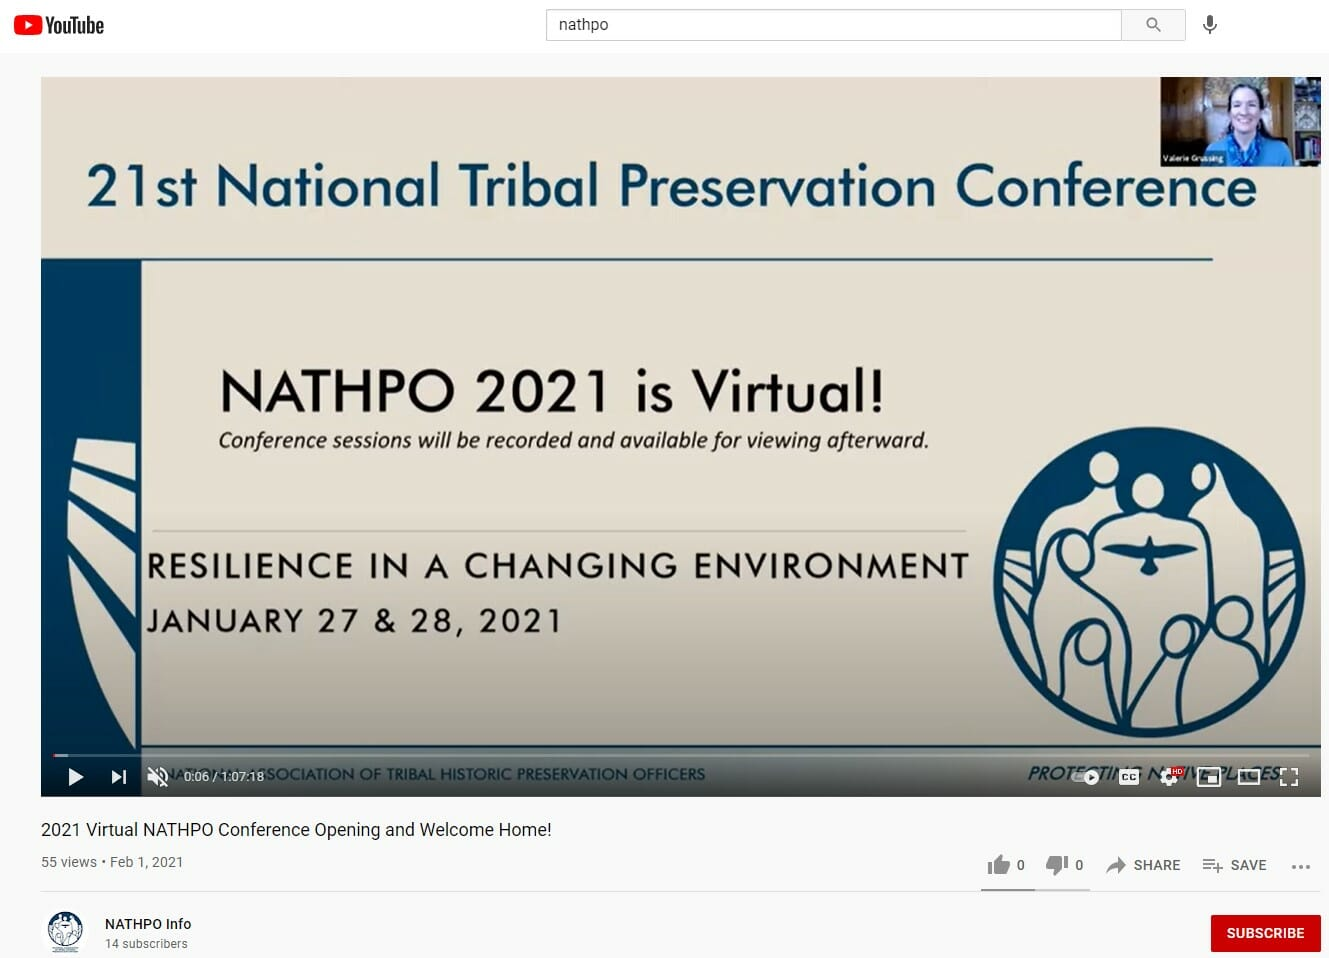 2021 Virtual NATHPO Conference Opening and Welcome Home!